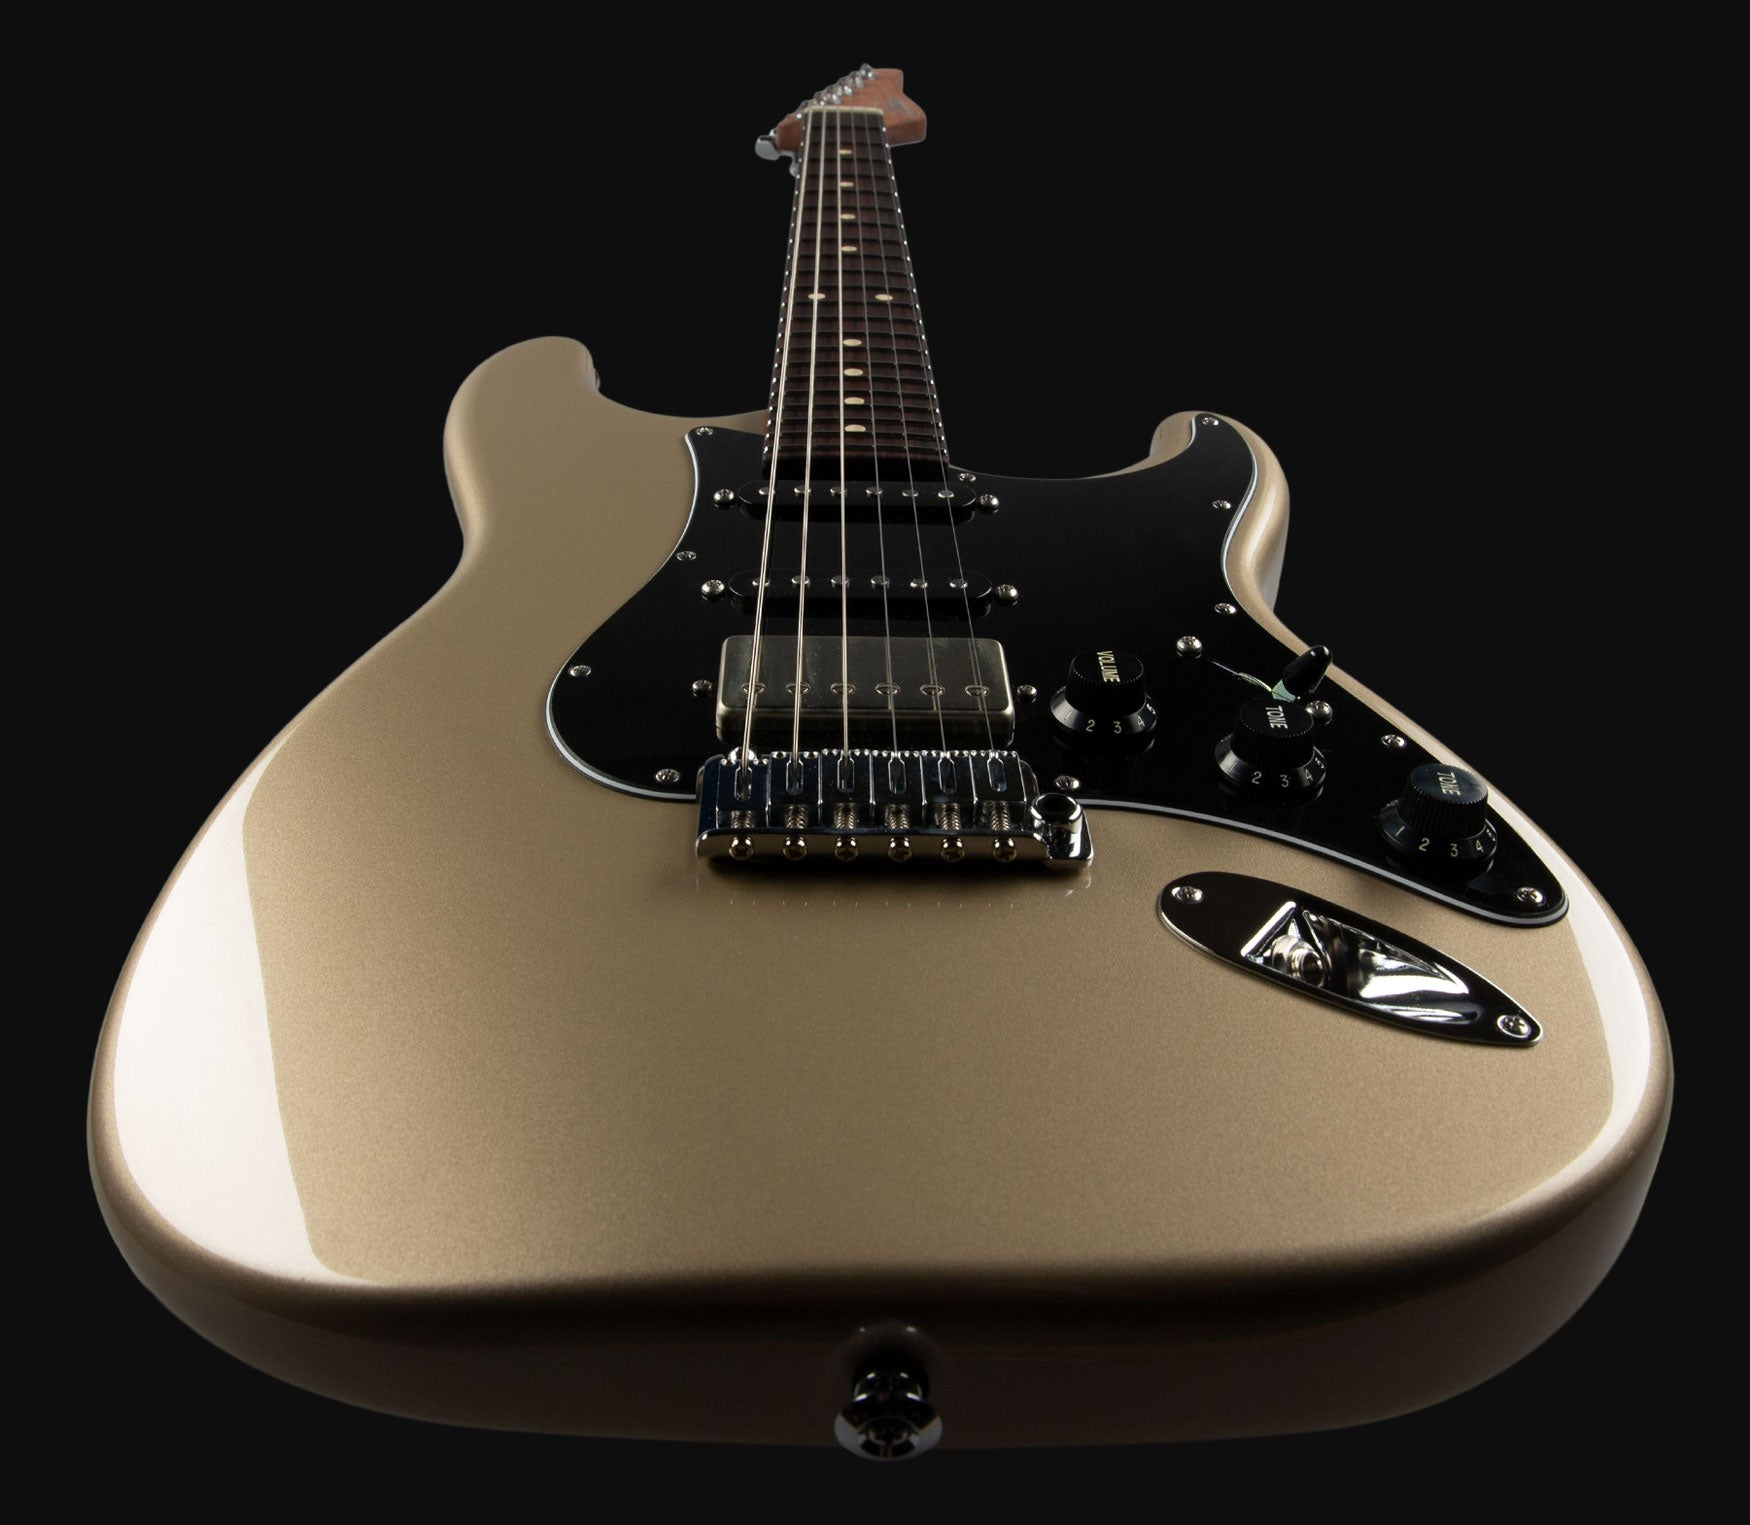 SUHR CLASSIC S METALLIC 2020 Limited Edition Champagne